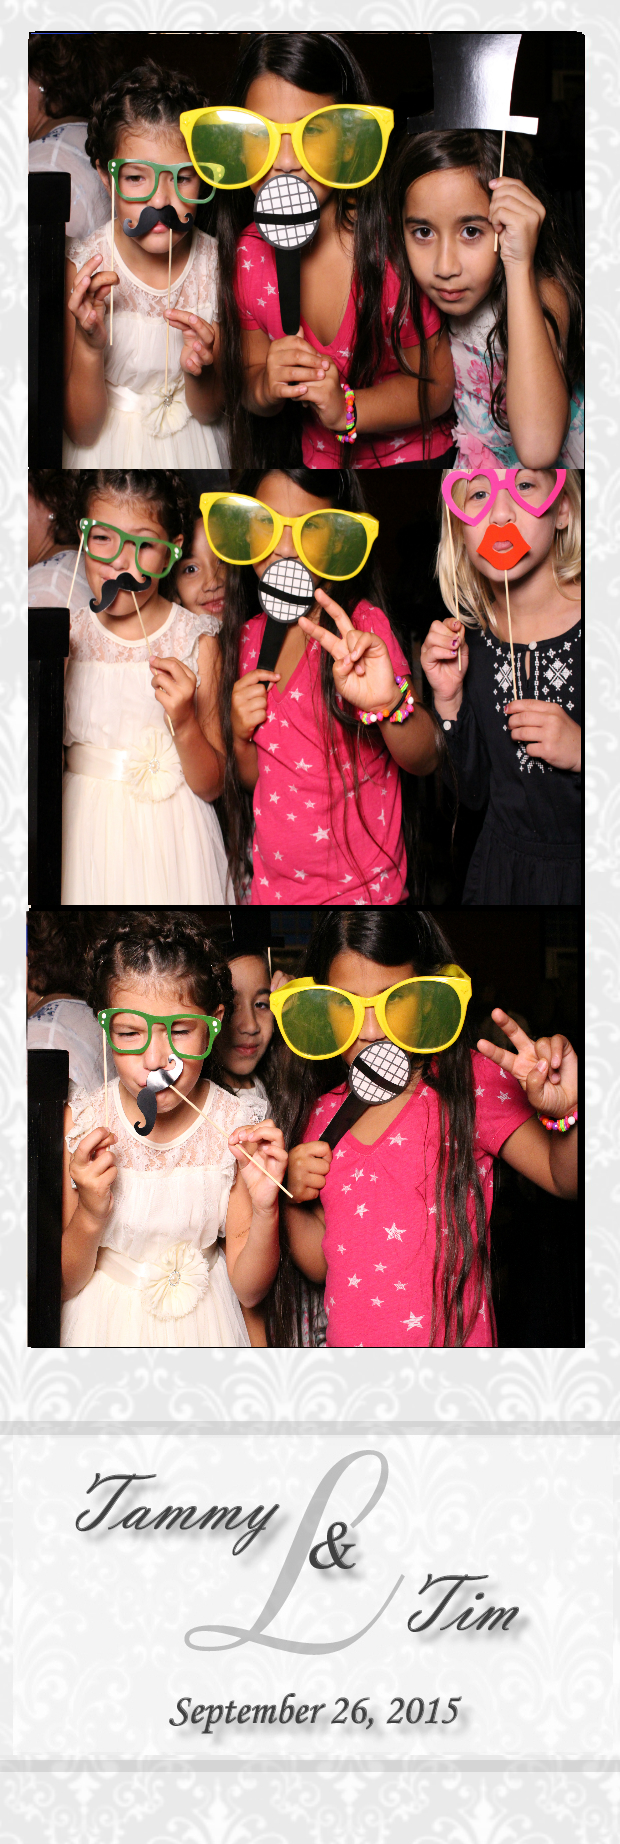 Guest House Events Photo Booth Strips T&T (6).jpg